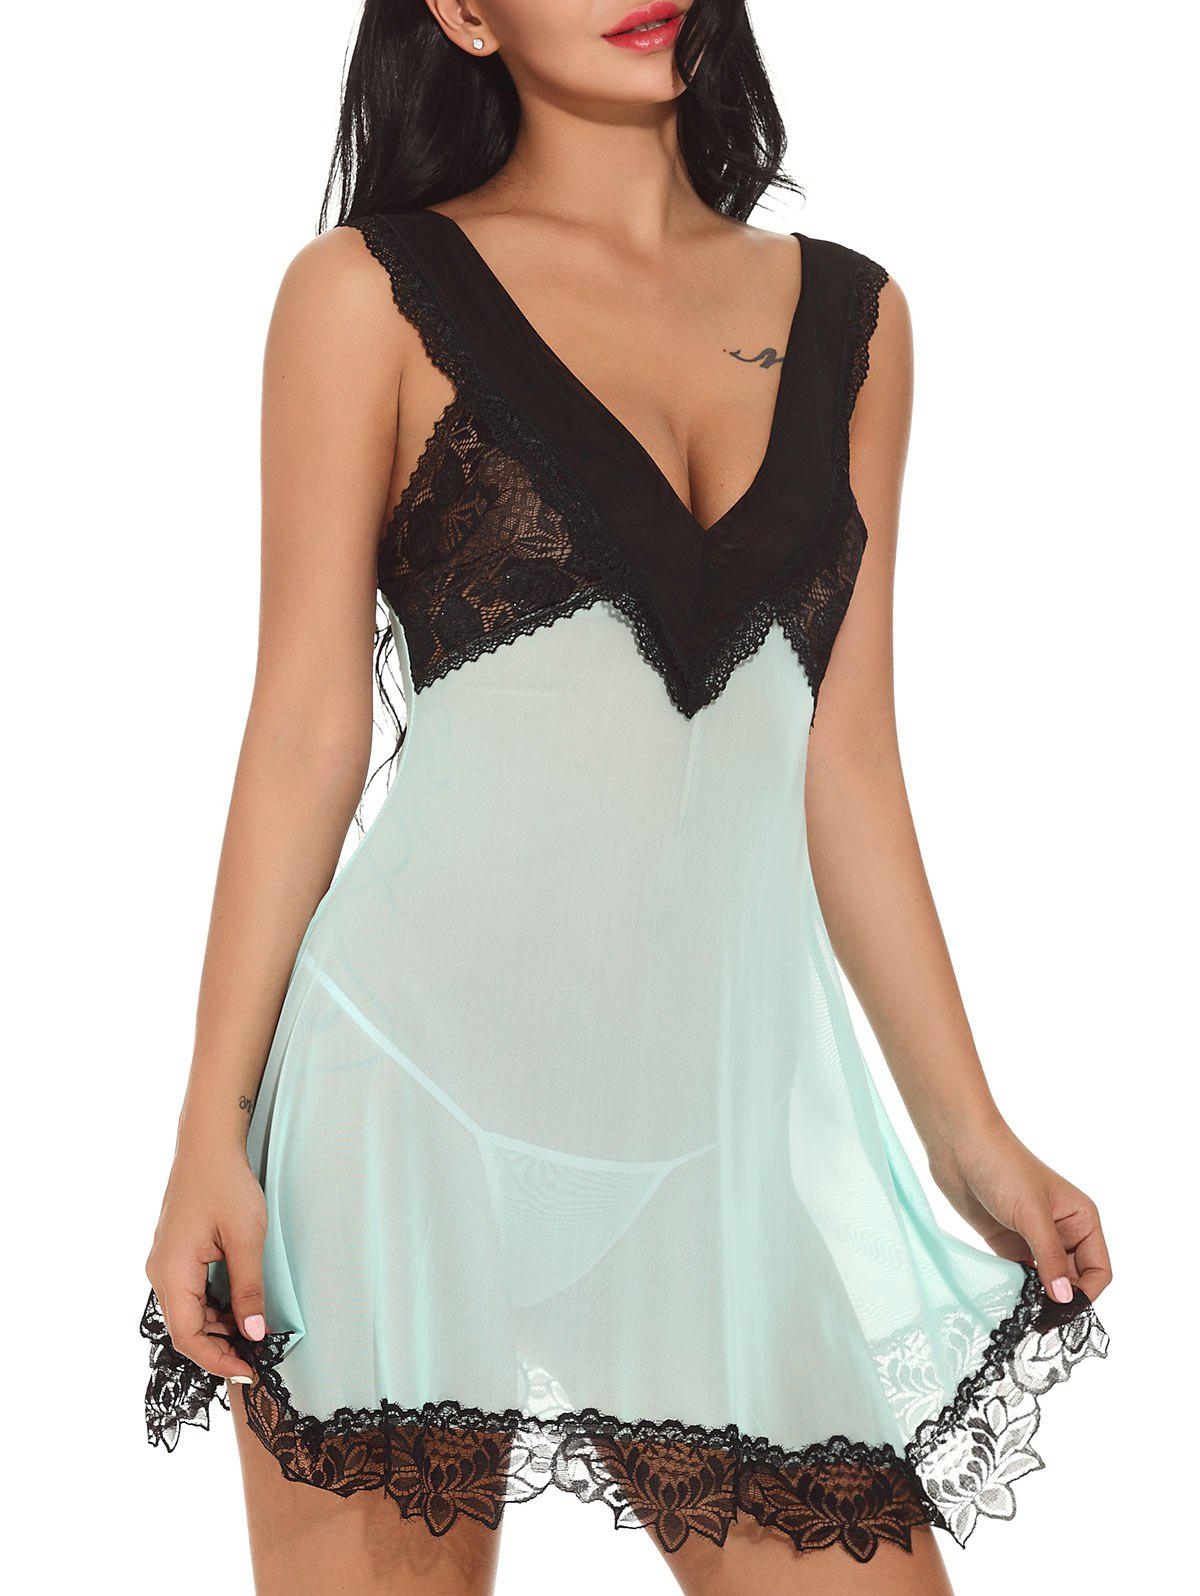 Discount Plunging Neck See-through Mesh Babydoll